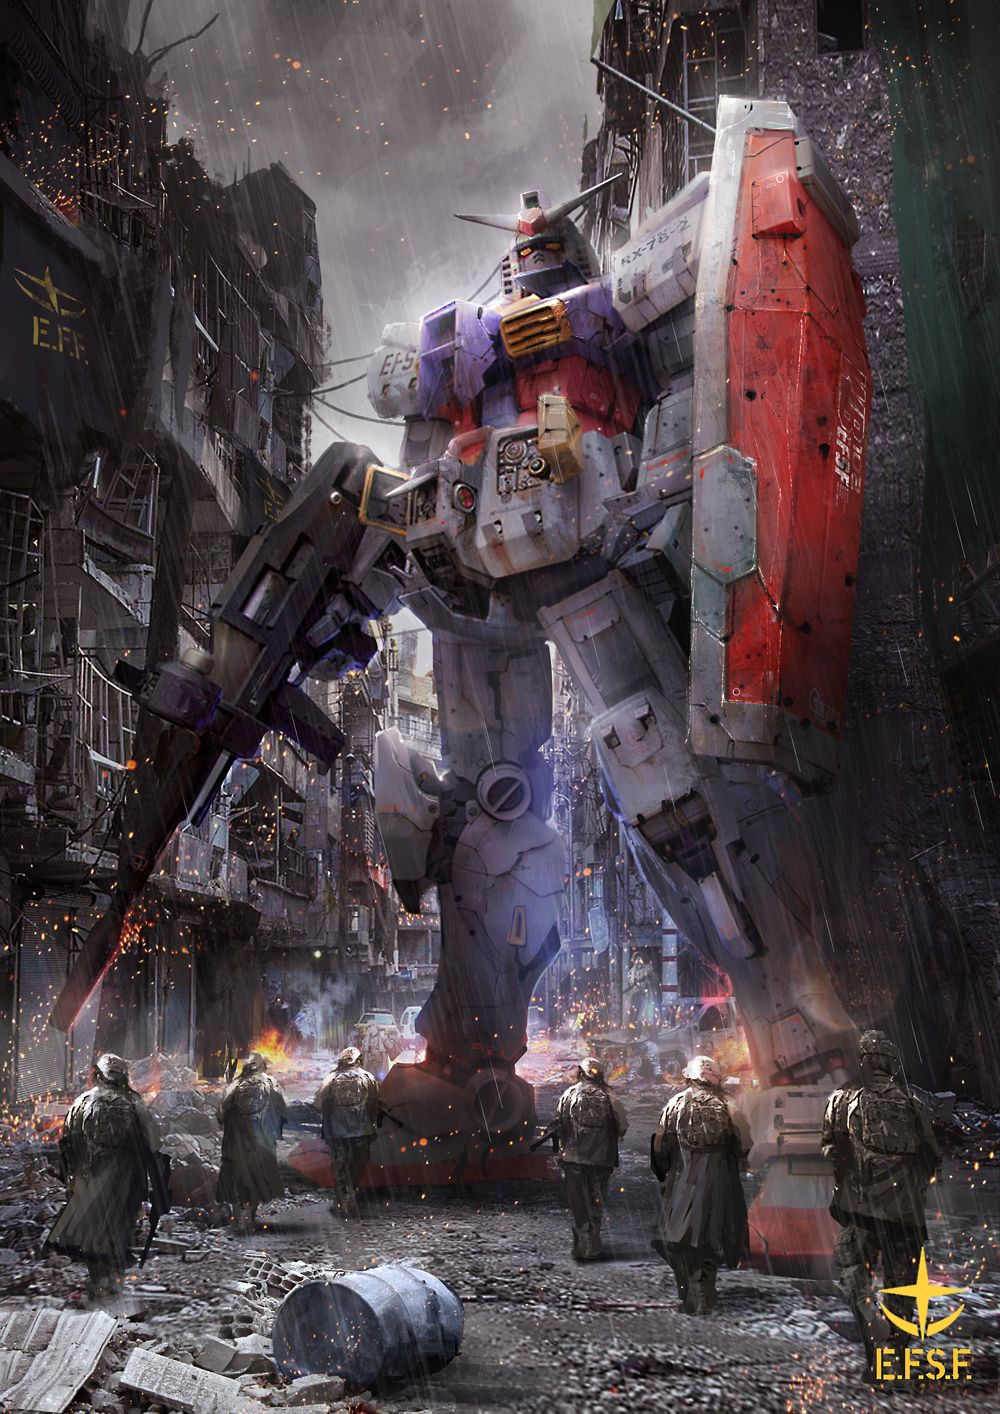 Fanart: Awesome Gundam Wallpapers By Thedurrrrian | Fond concernant Photos Goldorak Gratuit